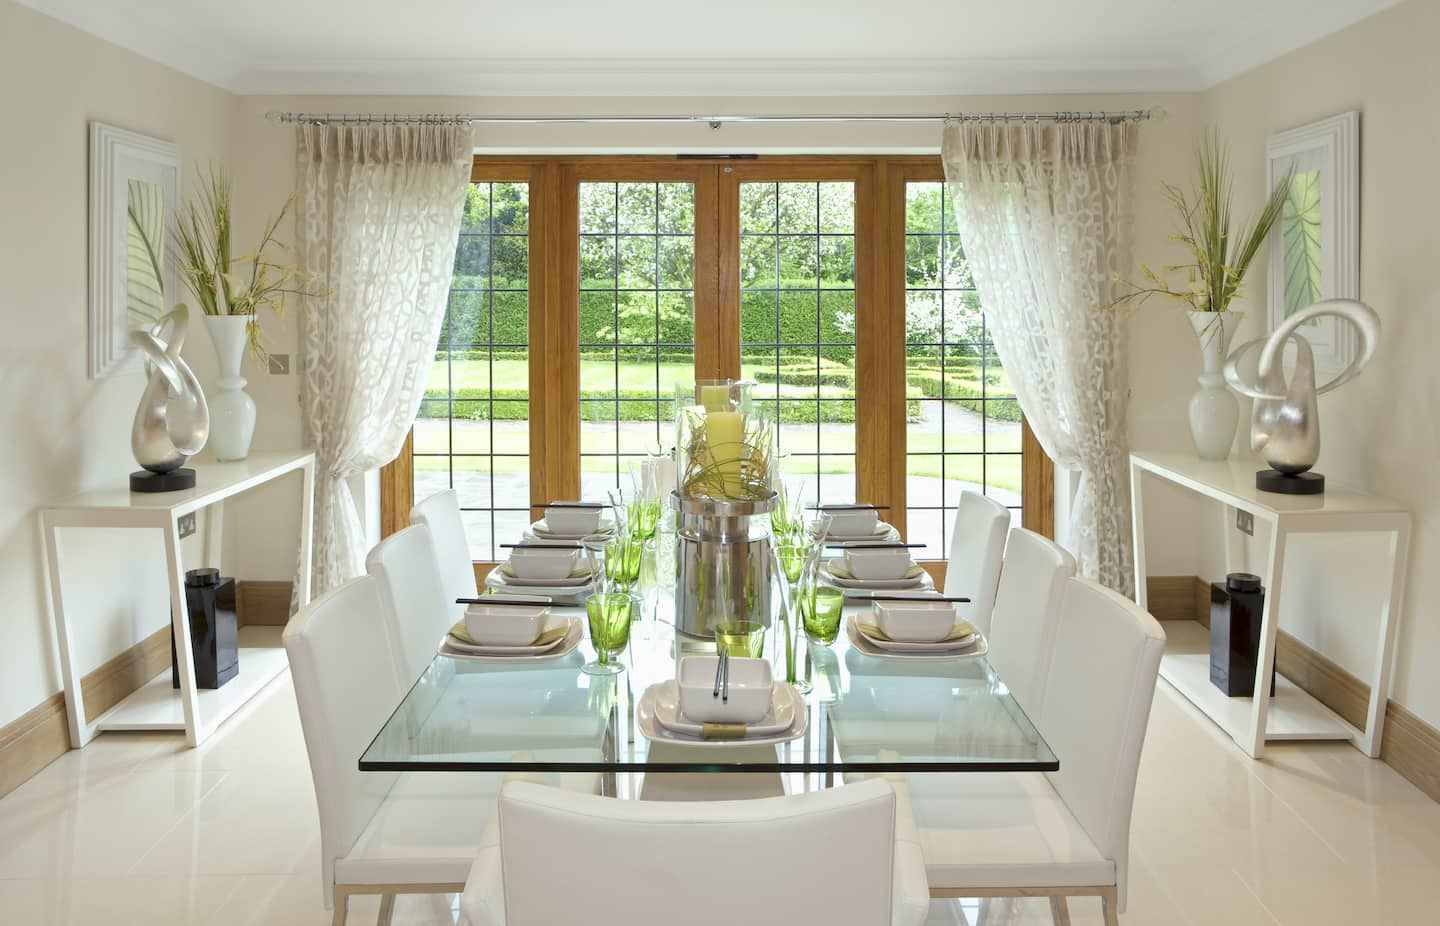 Nice Contemporary Formal Dining Room With White Chairs, Glass Table, Garden View  Through Glass Doors